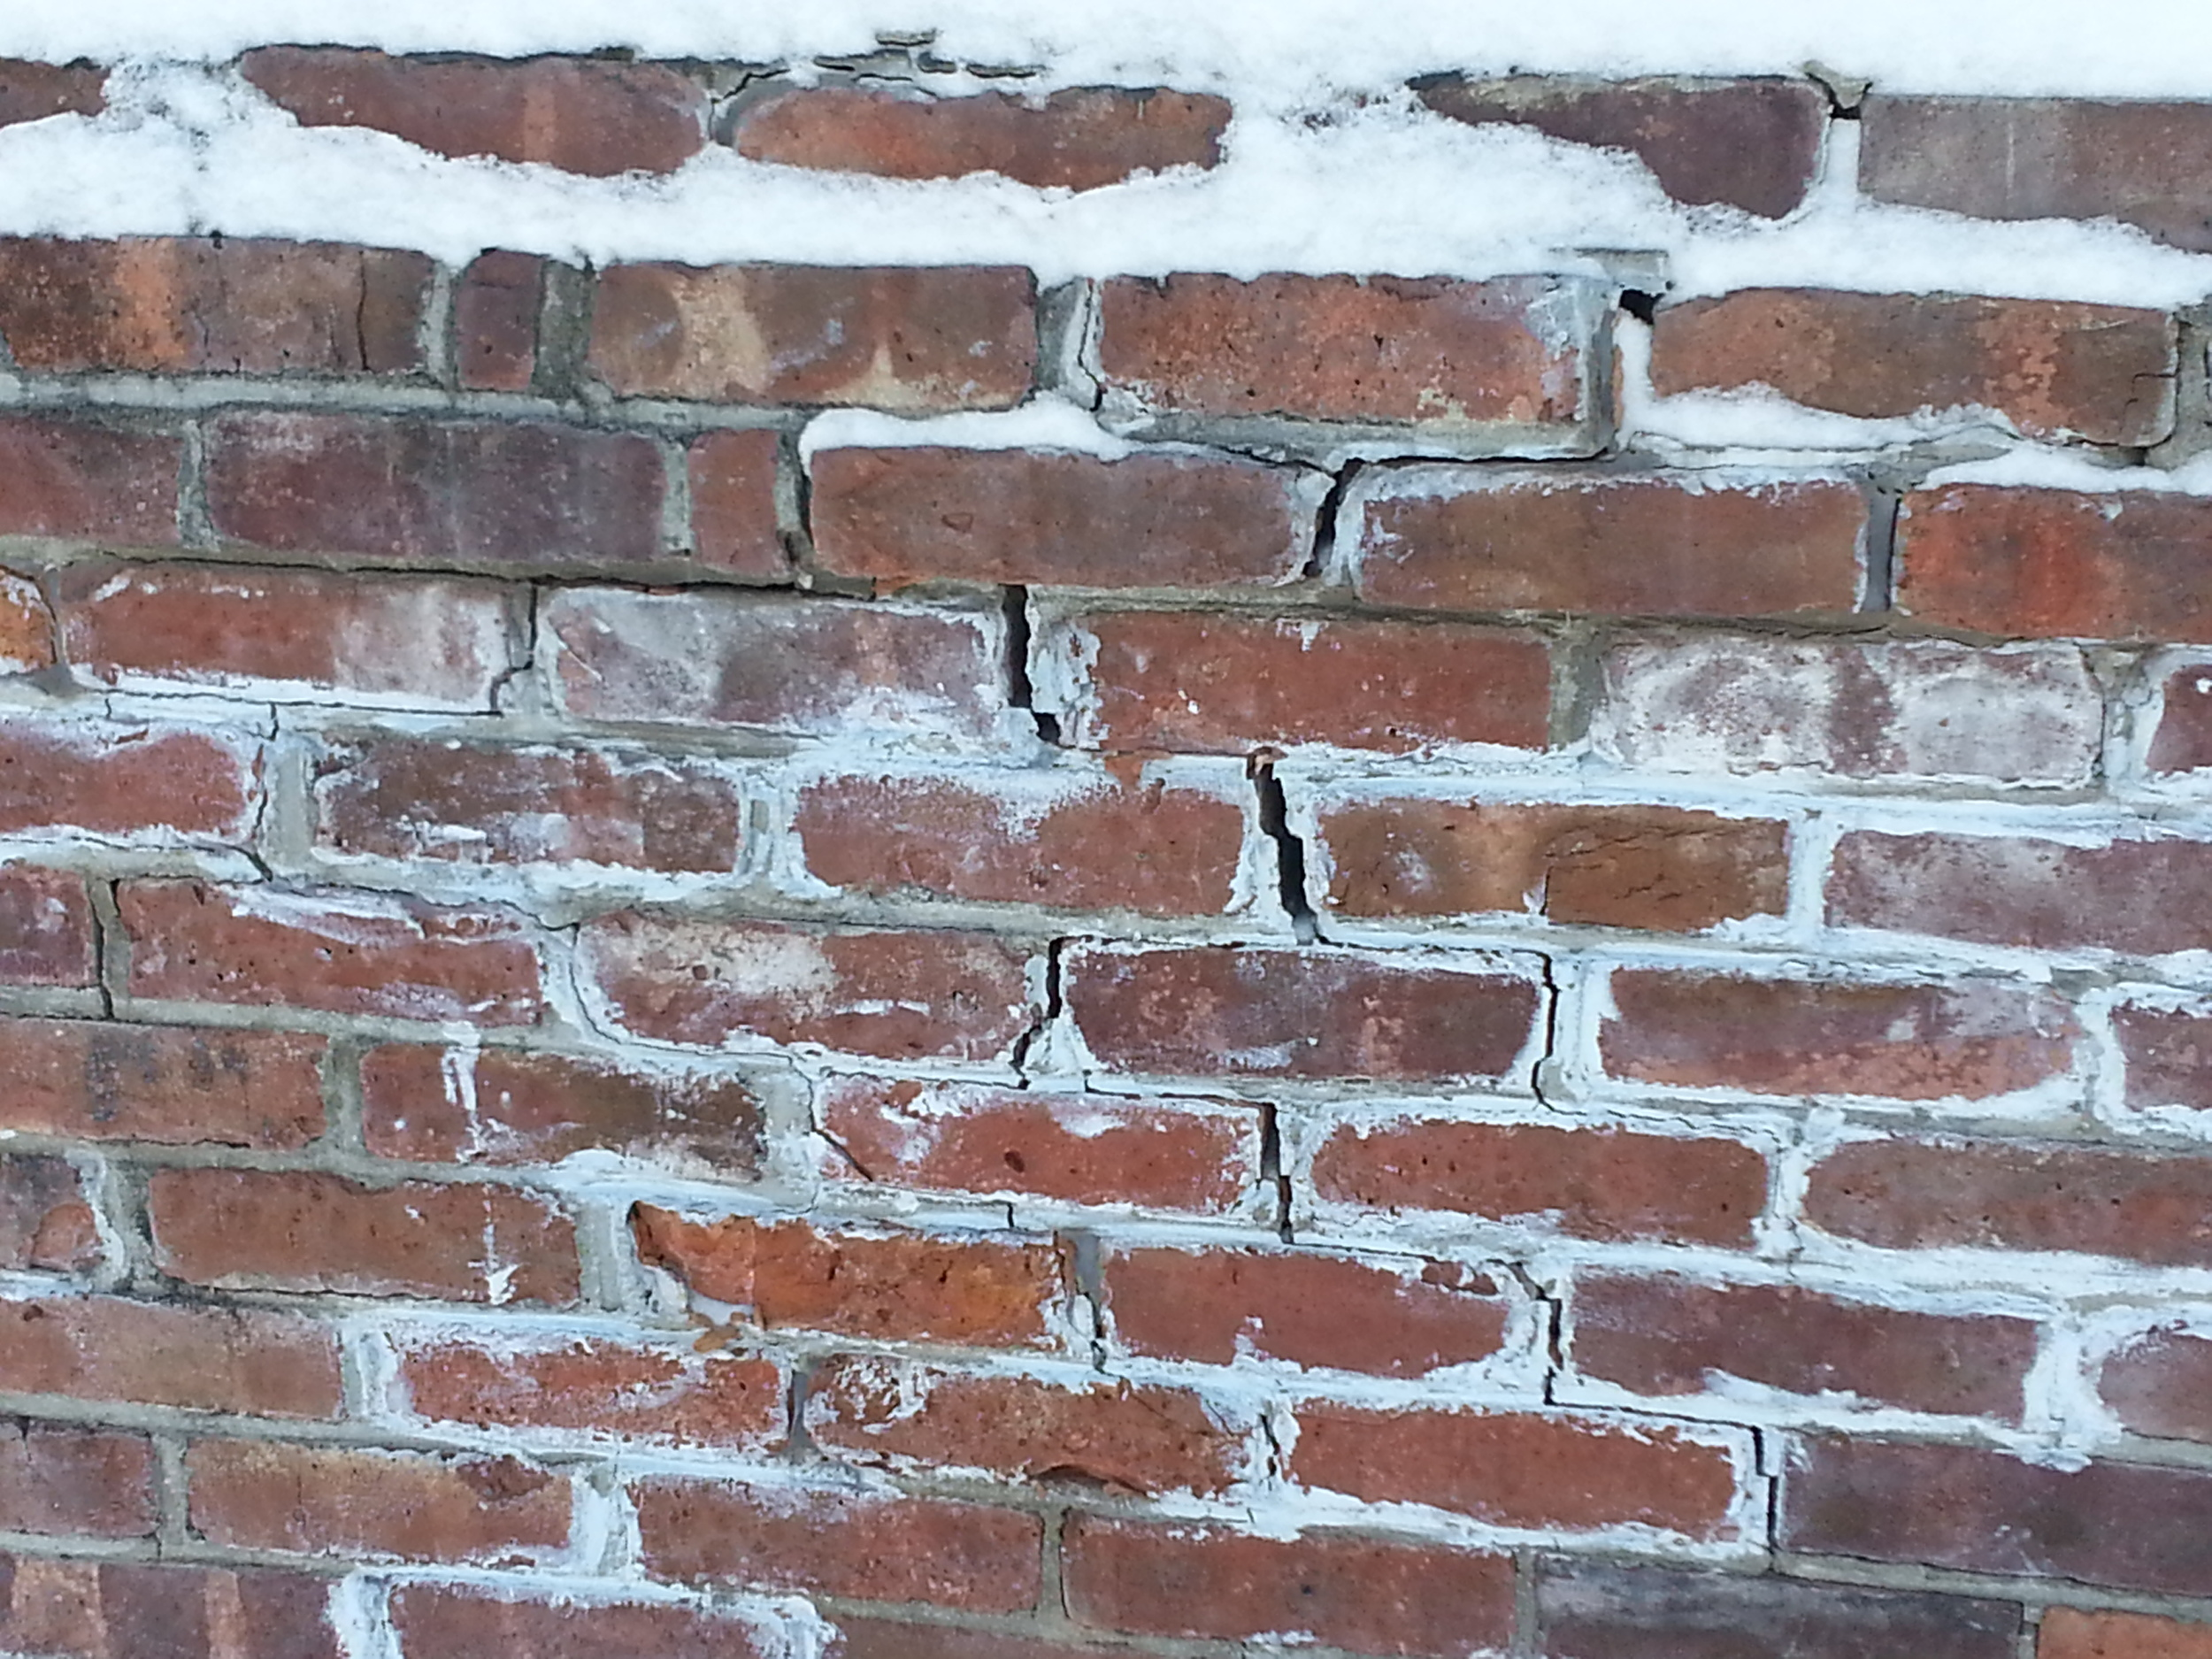 Water makes its way into the cracks and pores, freezing and thawingwreaks havoc on building structures.